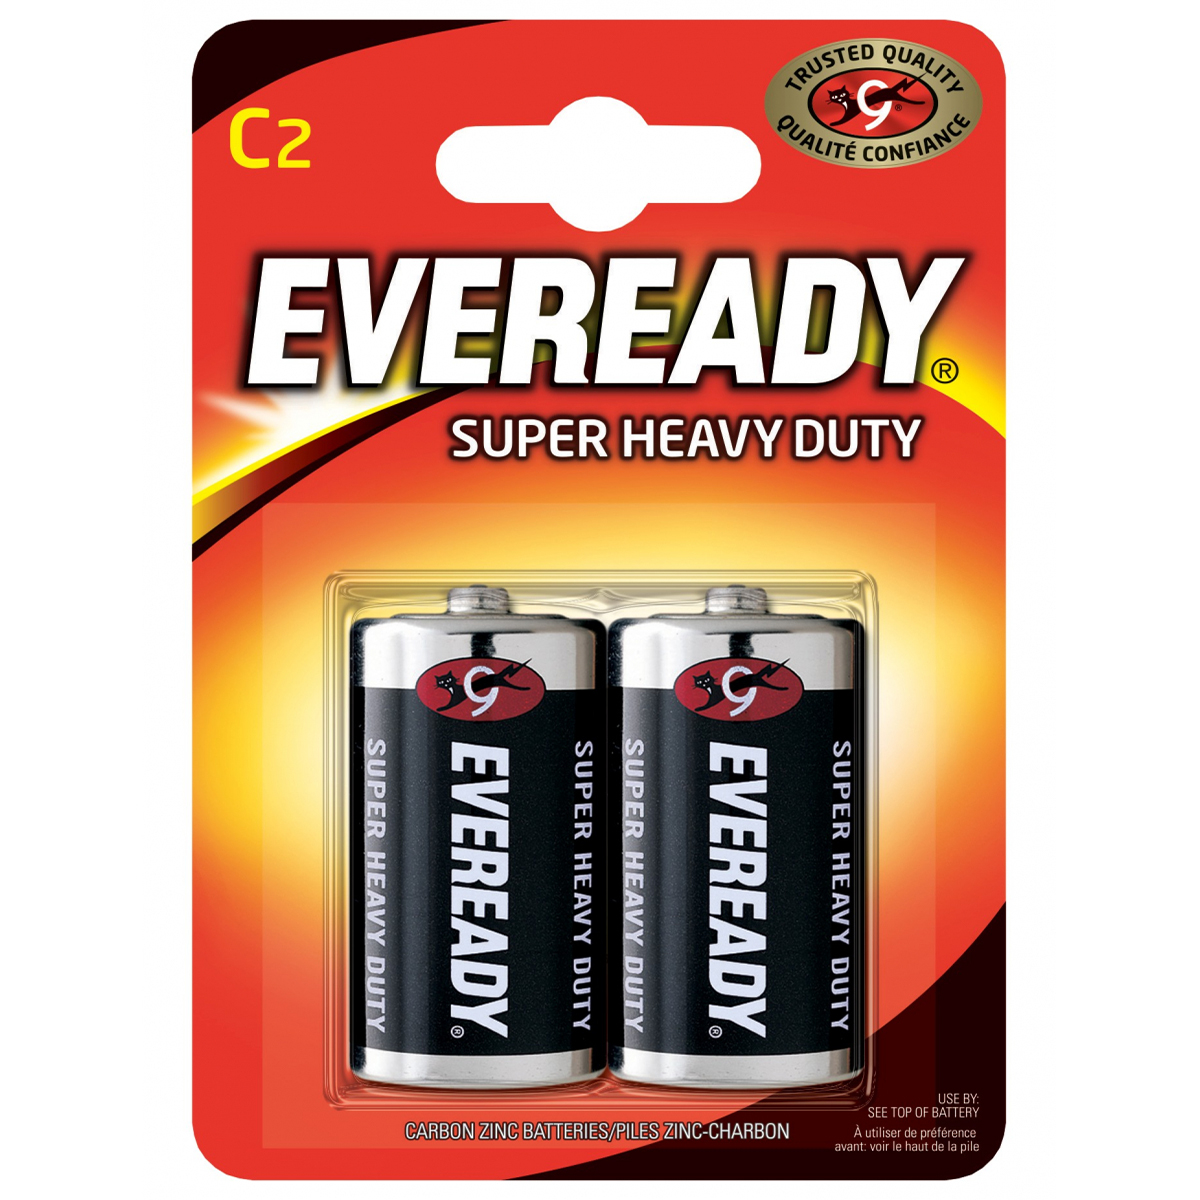 Eveready SHD CR14 Pil FSB2